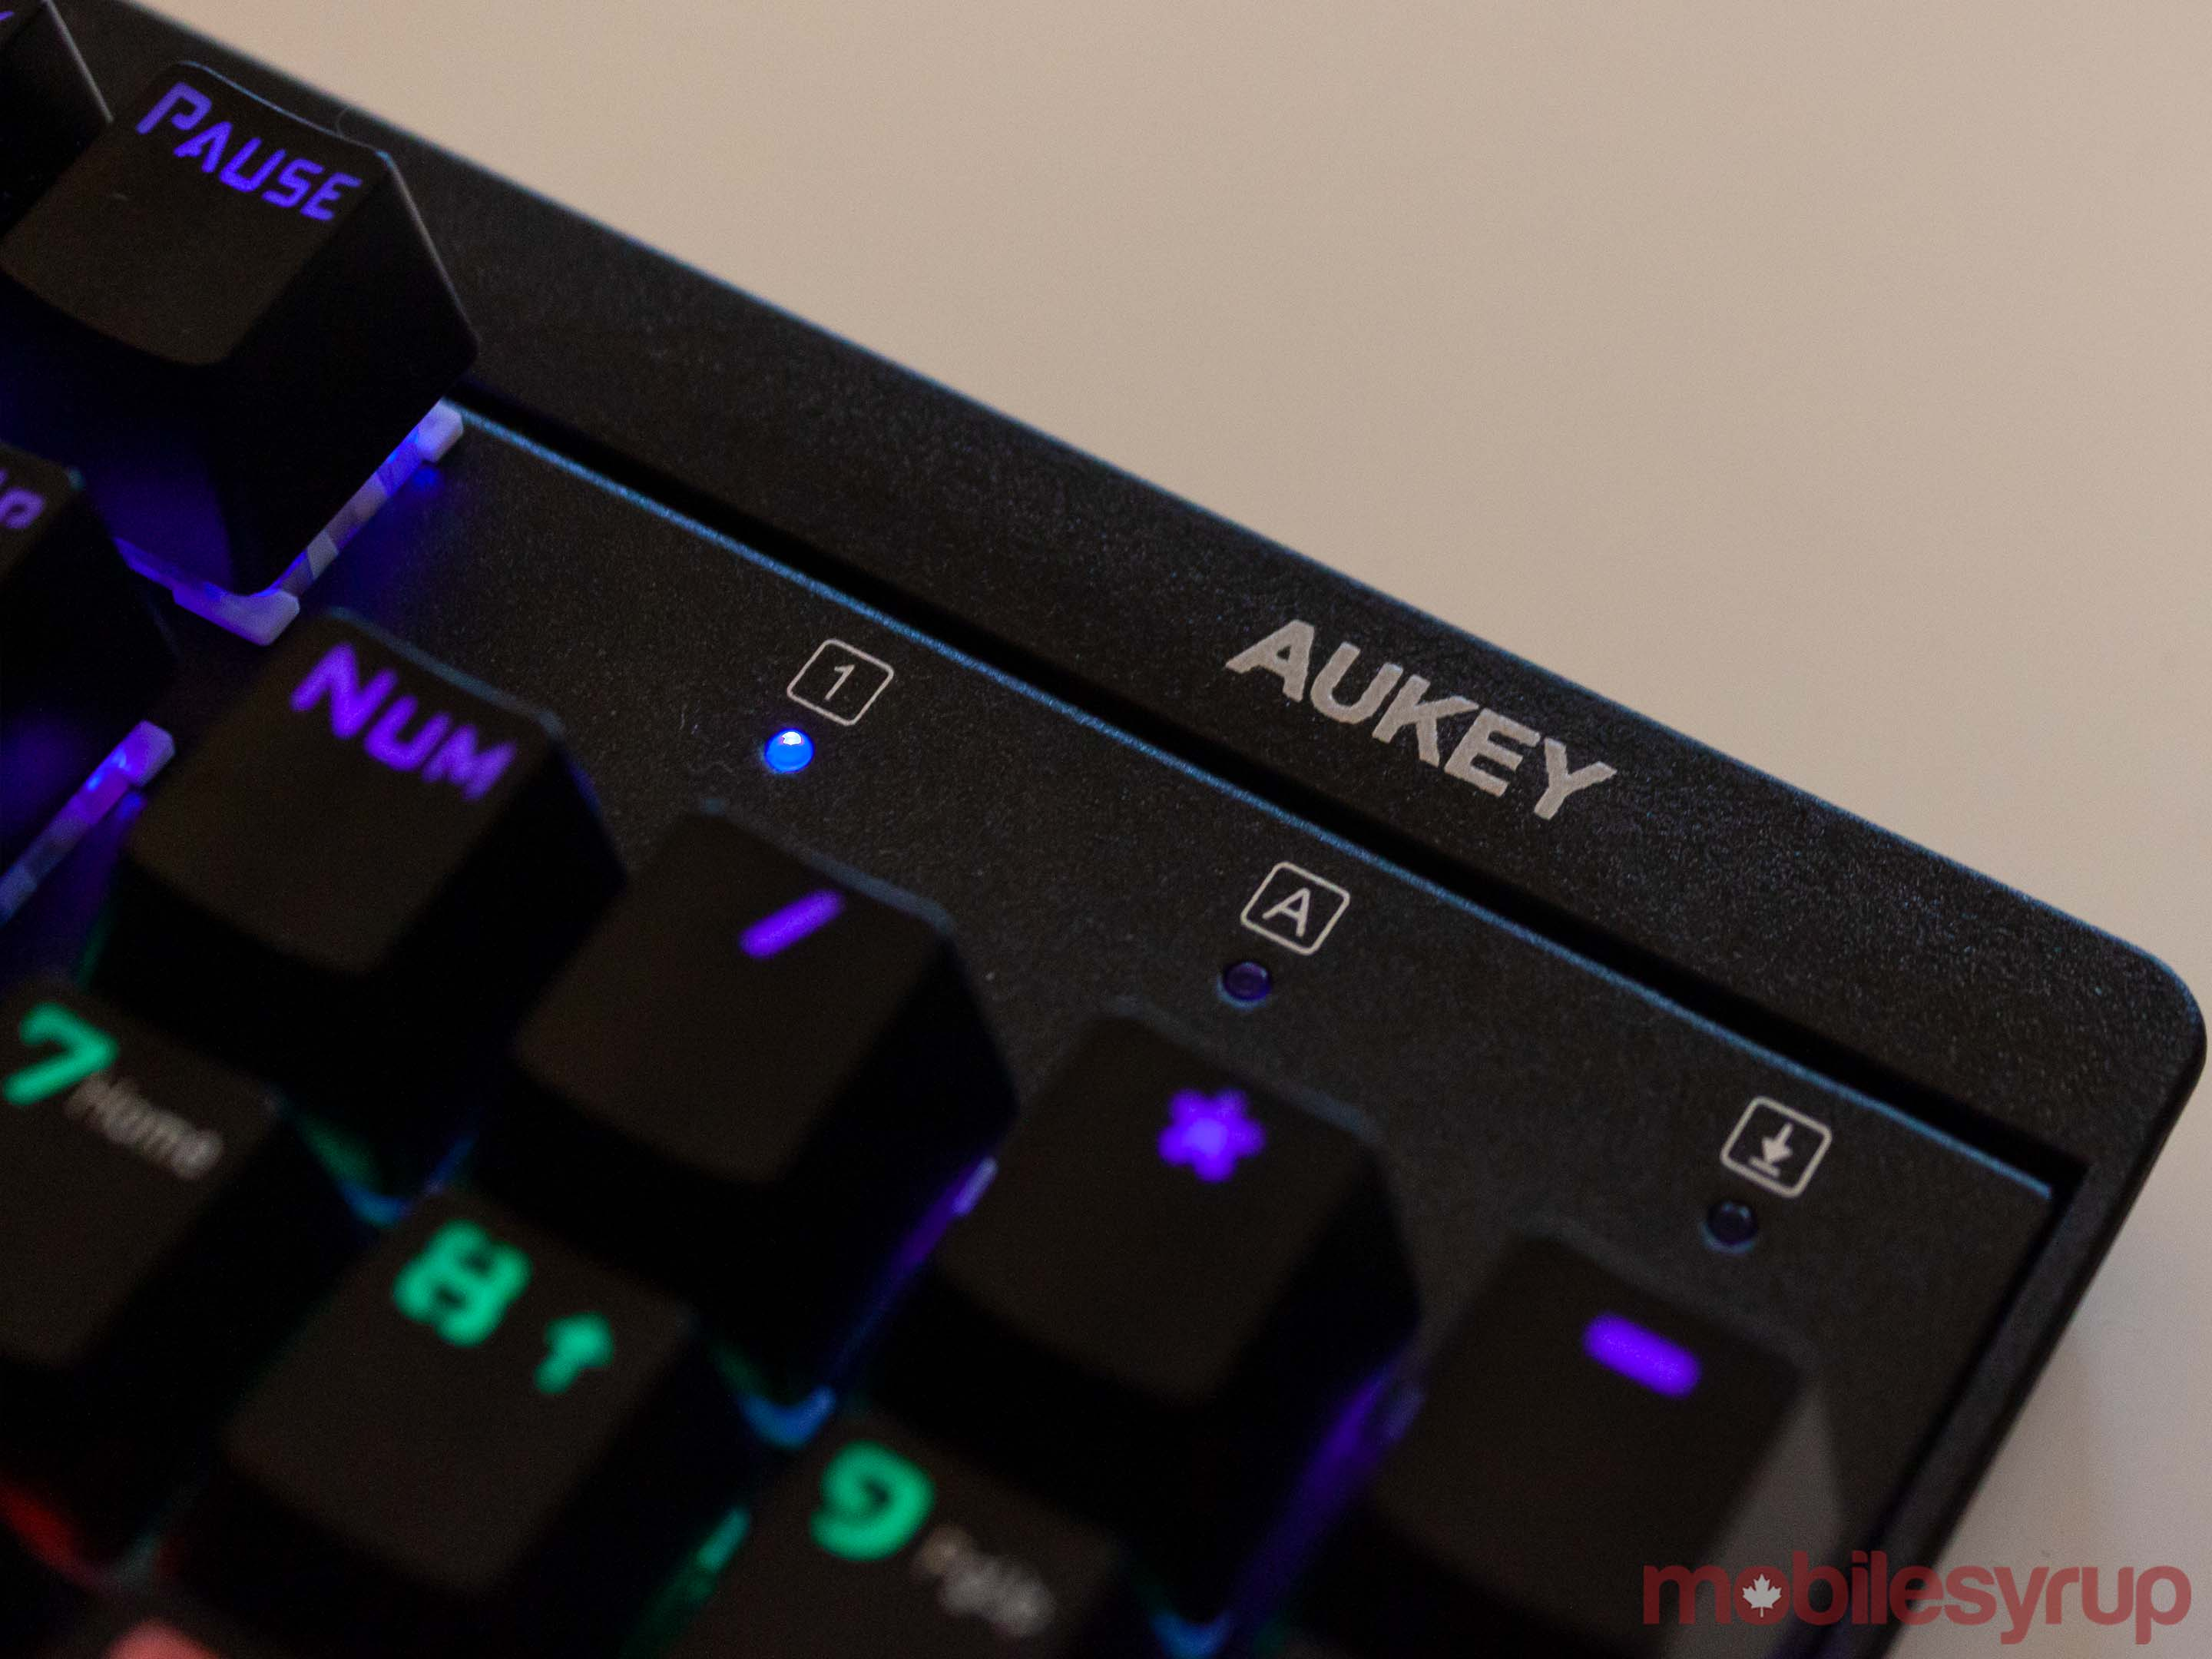 Aukey logo on KM-G6